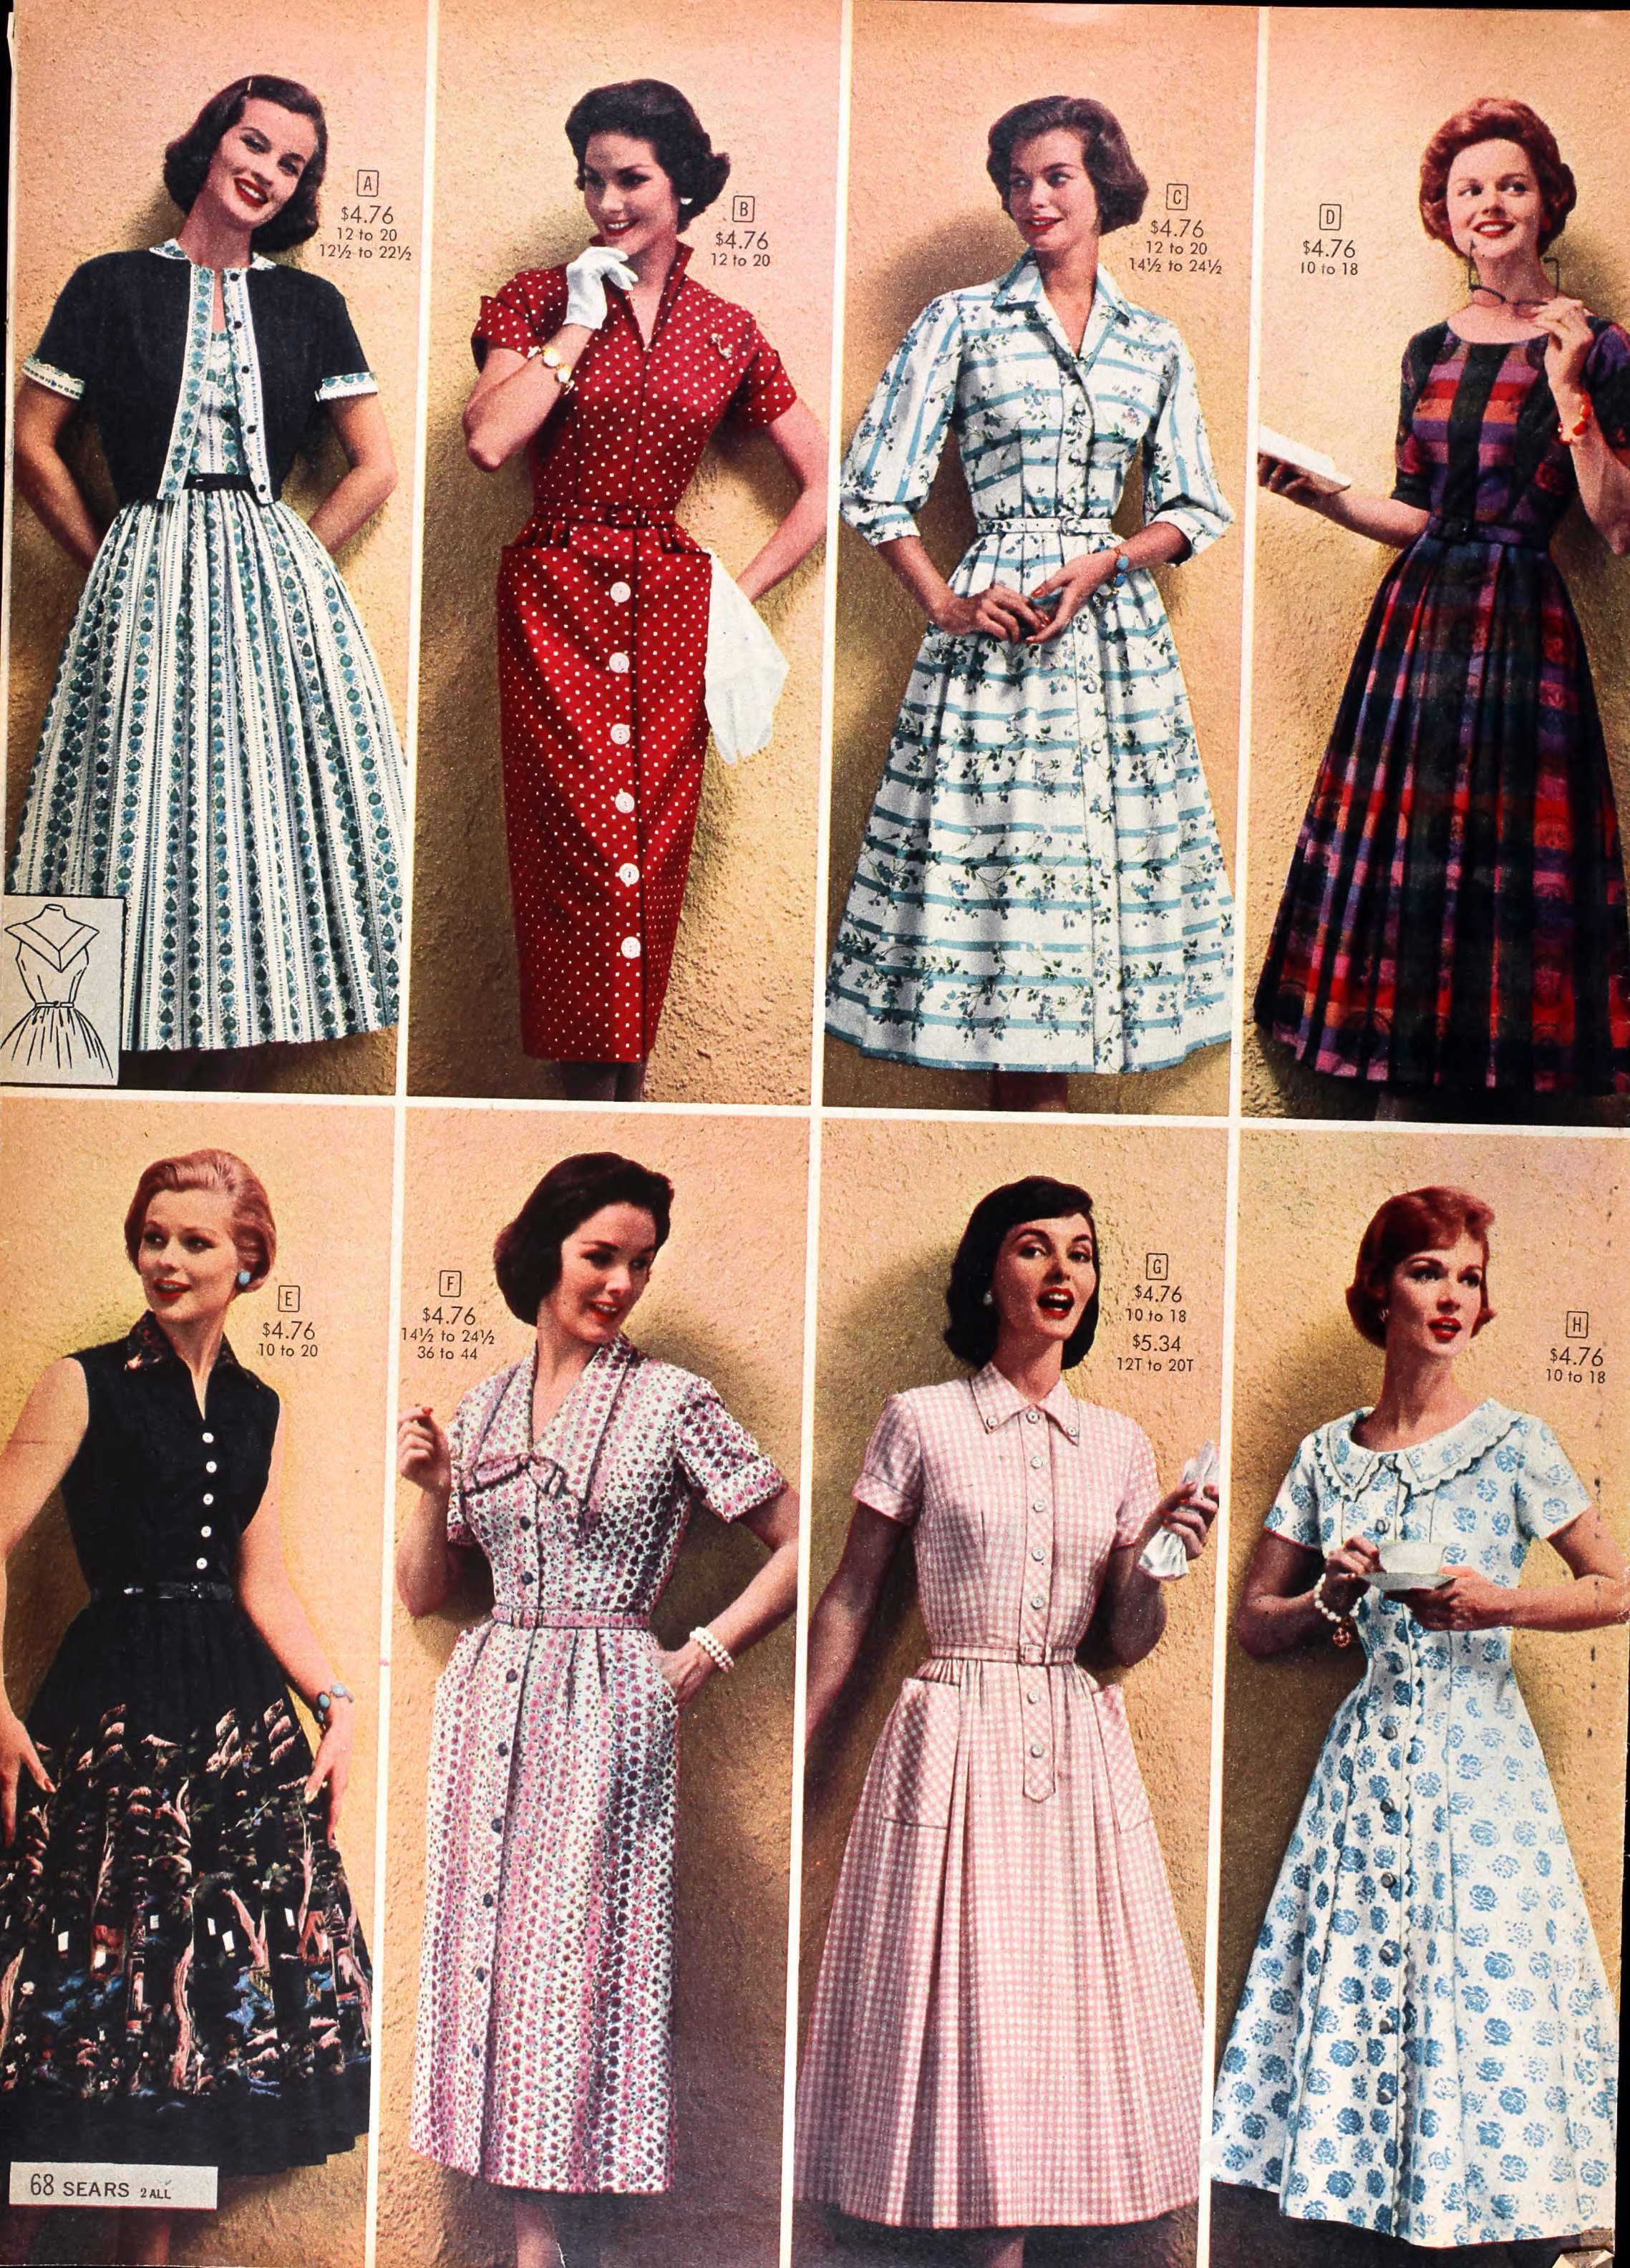 From the Sears Catalog, Spring/Summer 1958